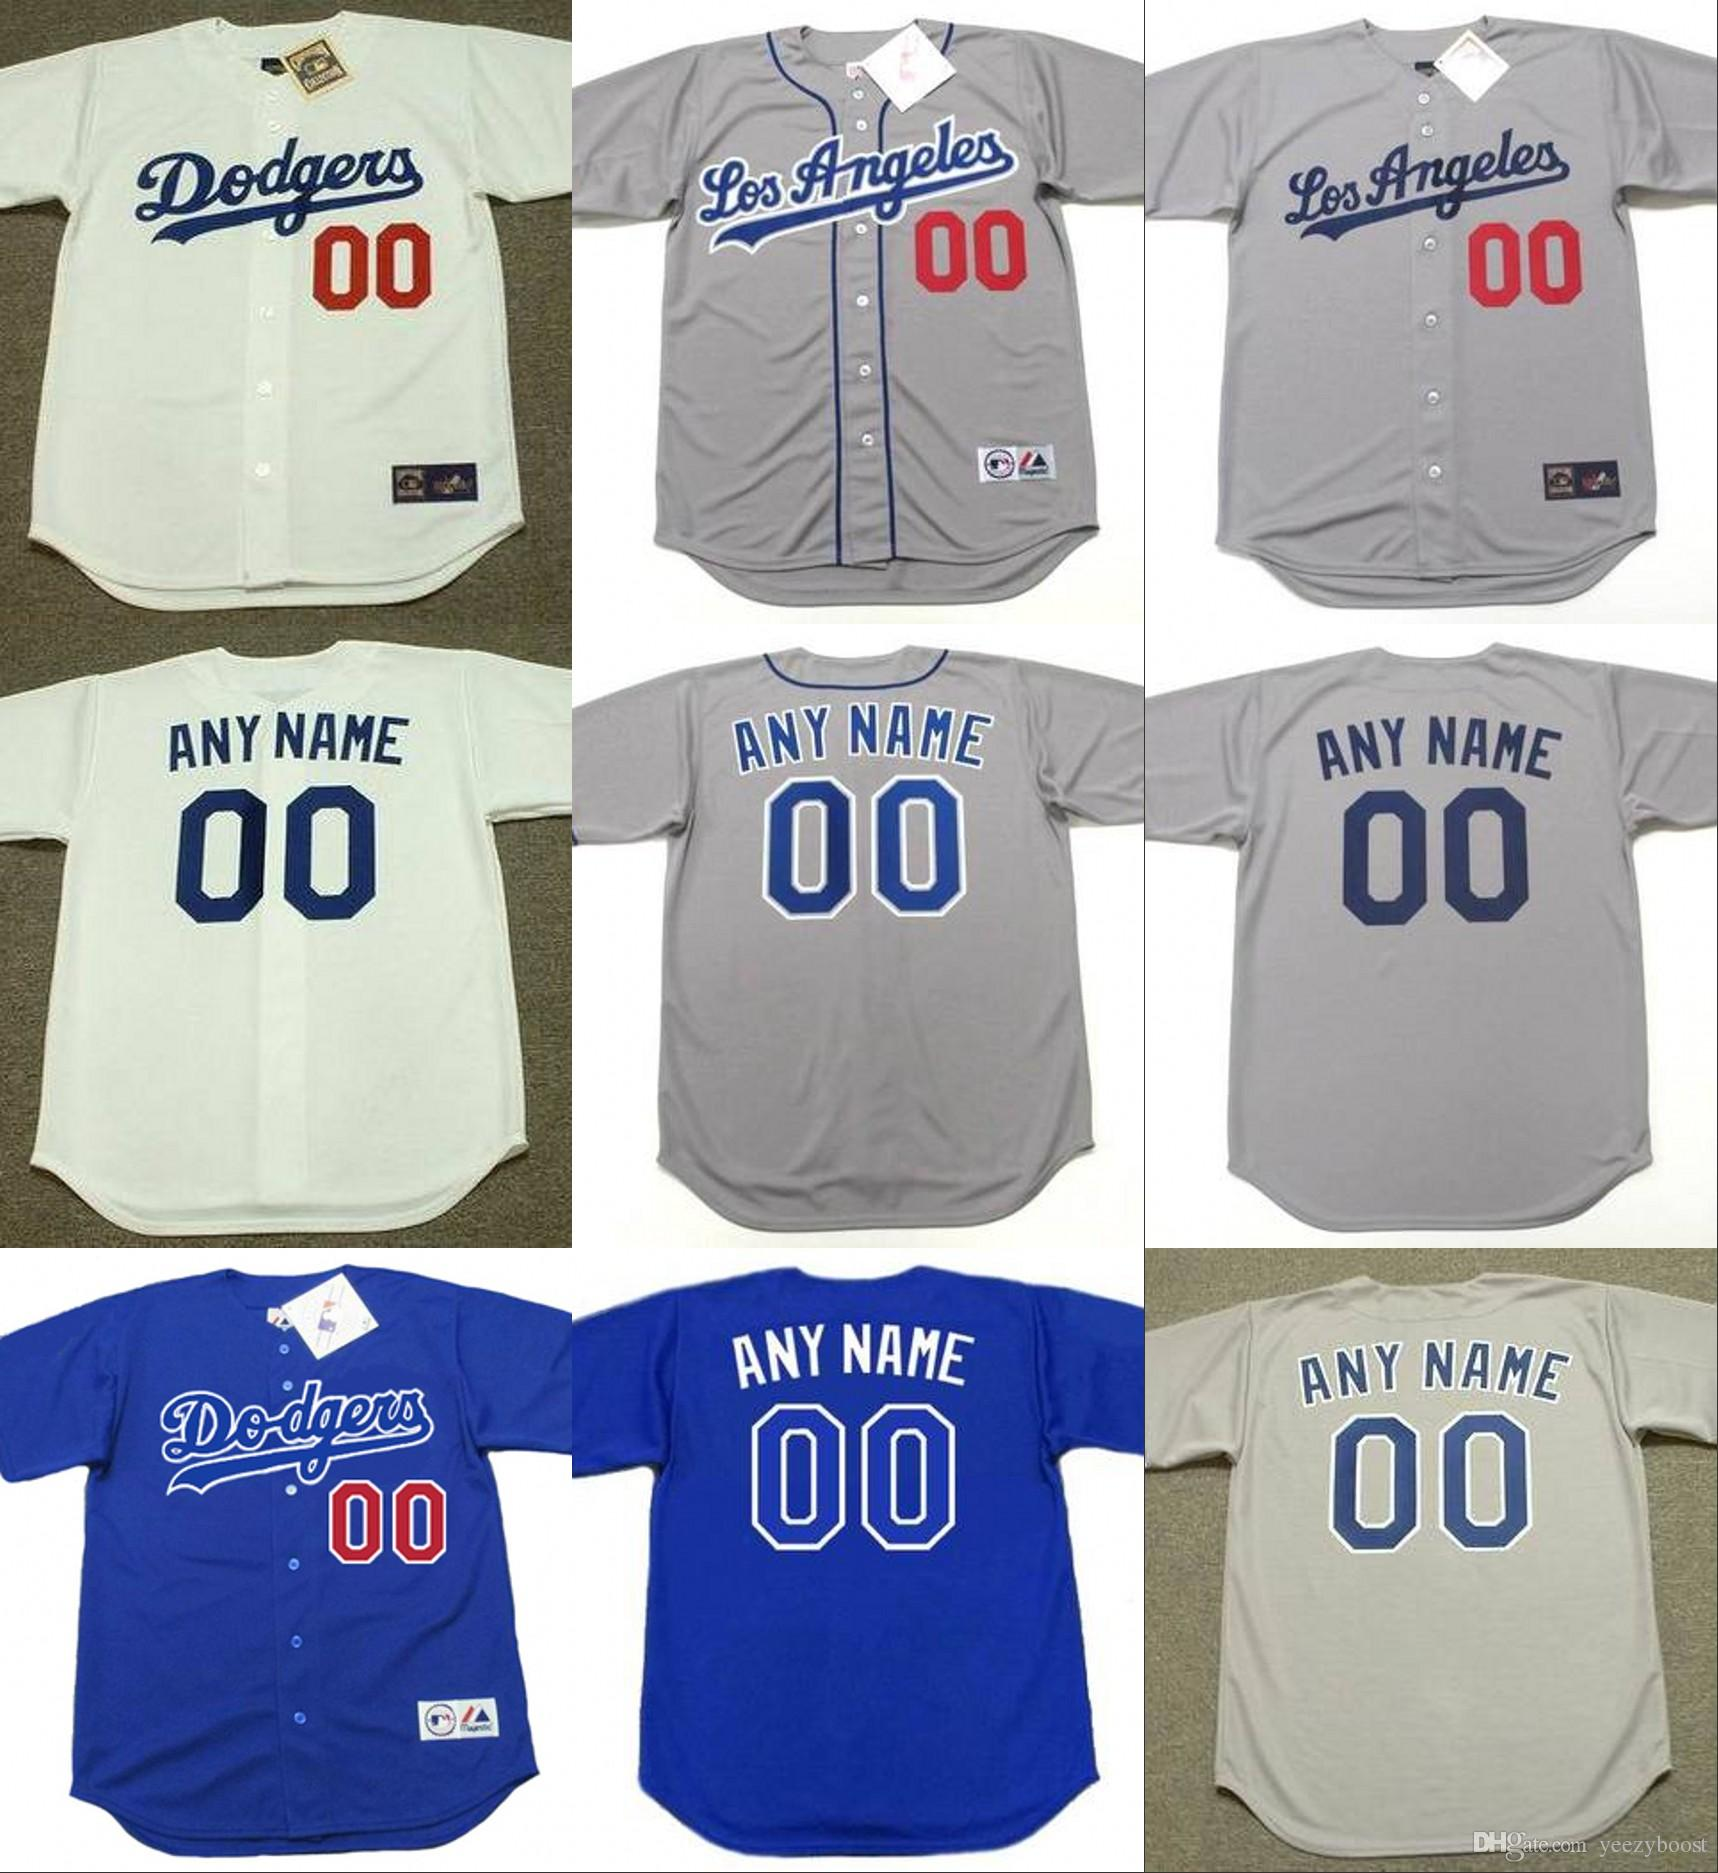 ... 2003 Mike Piazlos Jersey Angeles Dodgers Grey With  Men,Women,Children,All Stitched Majestic Throwback Baseball Jerseys From  Yeezyboost, $18.1 | Dhgate.